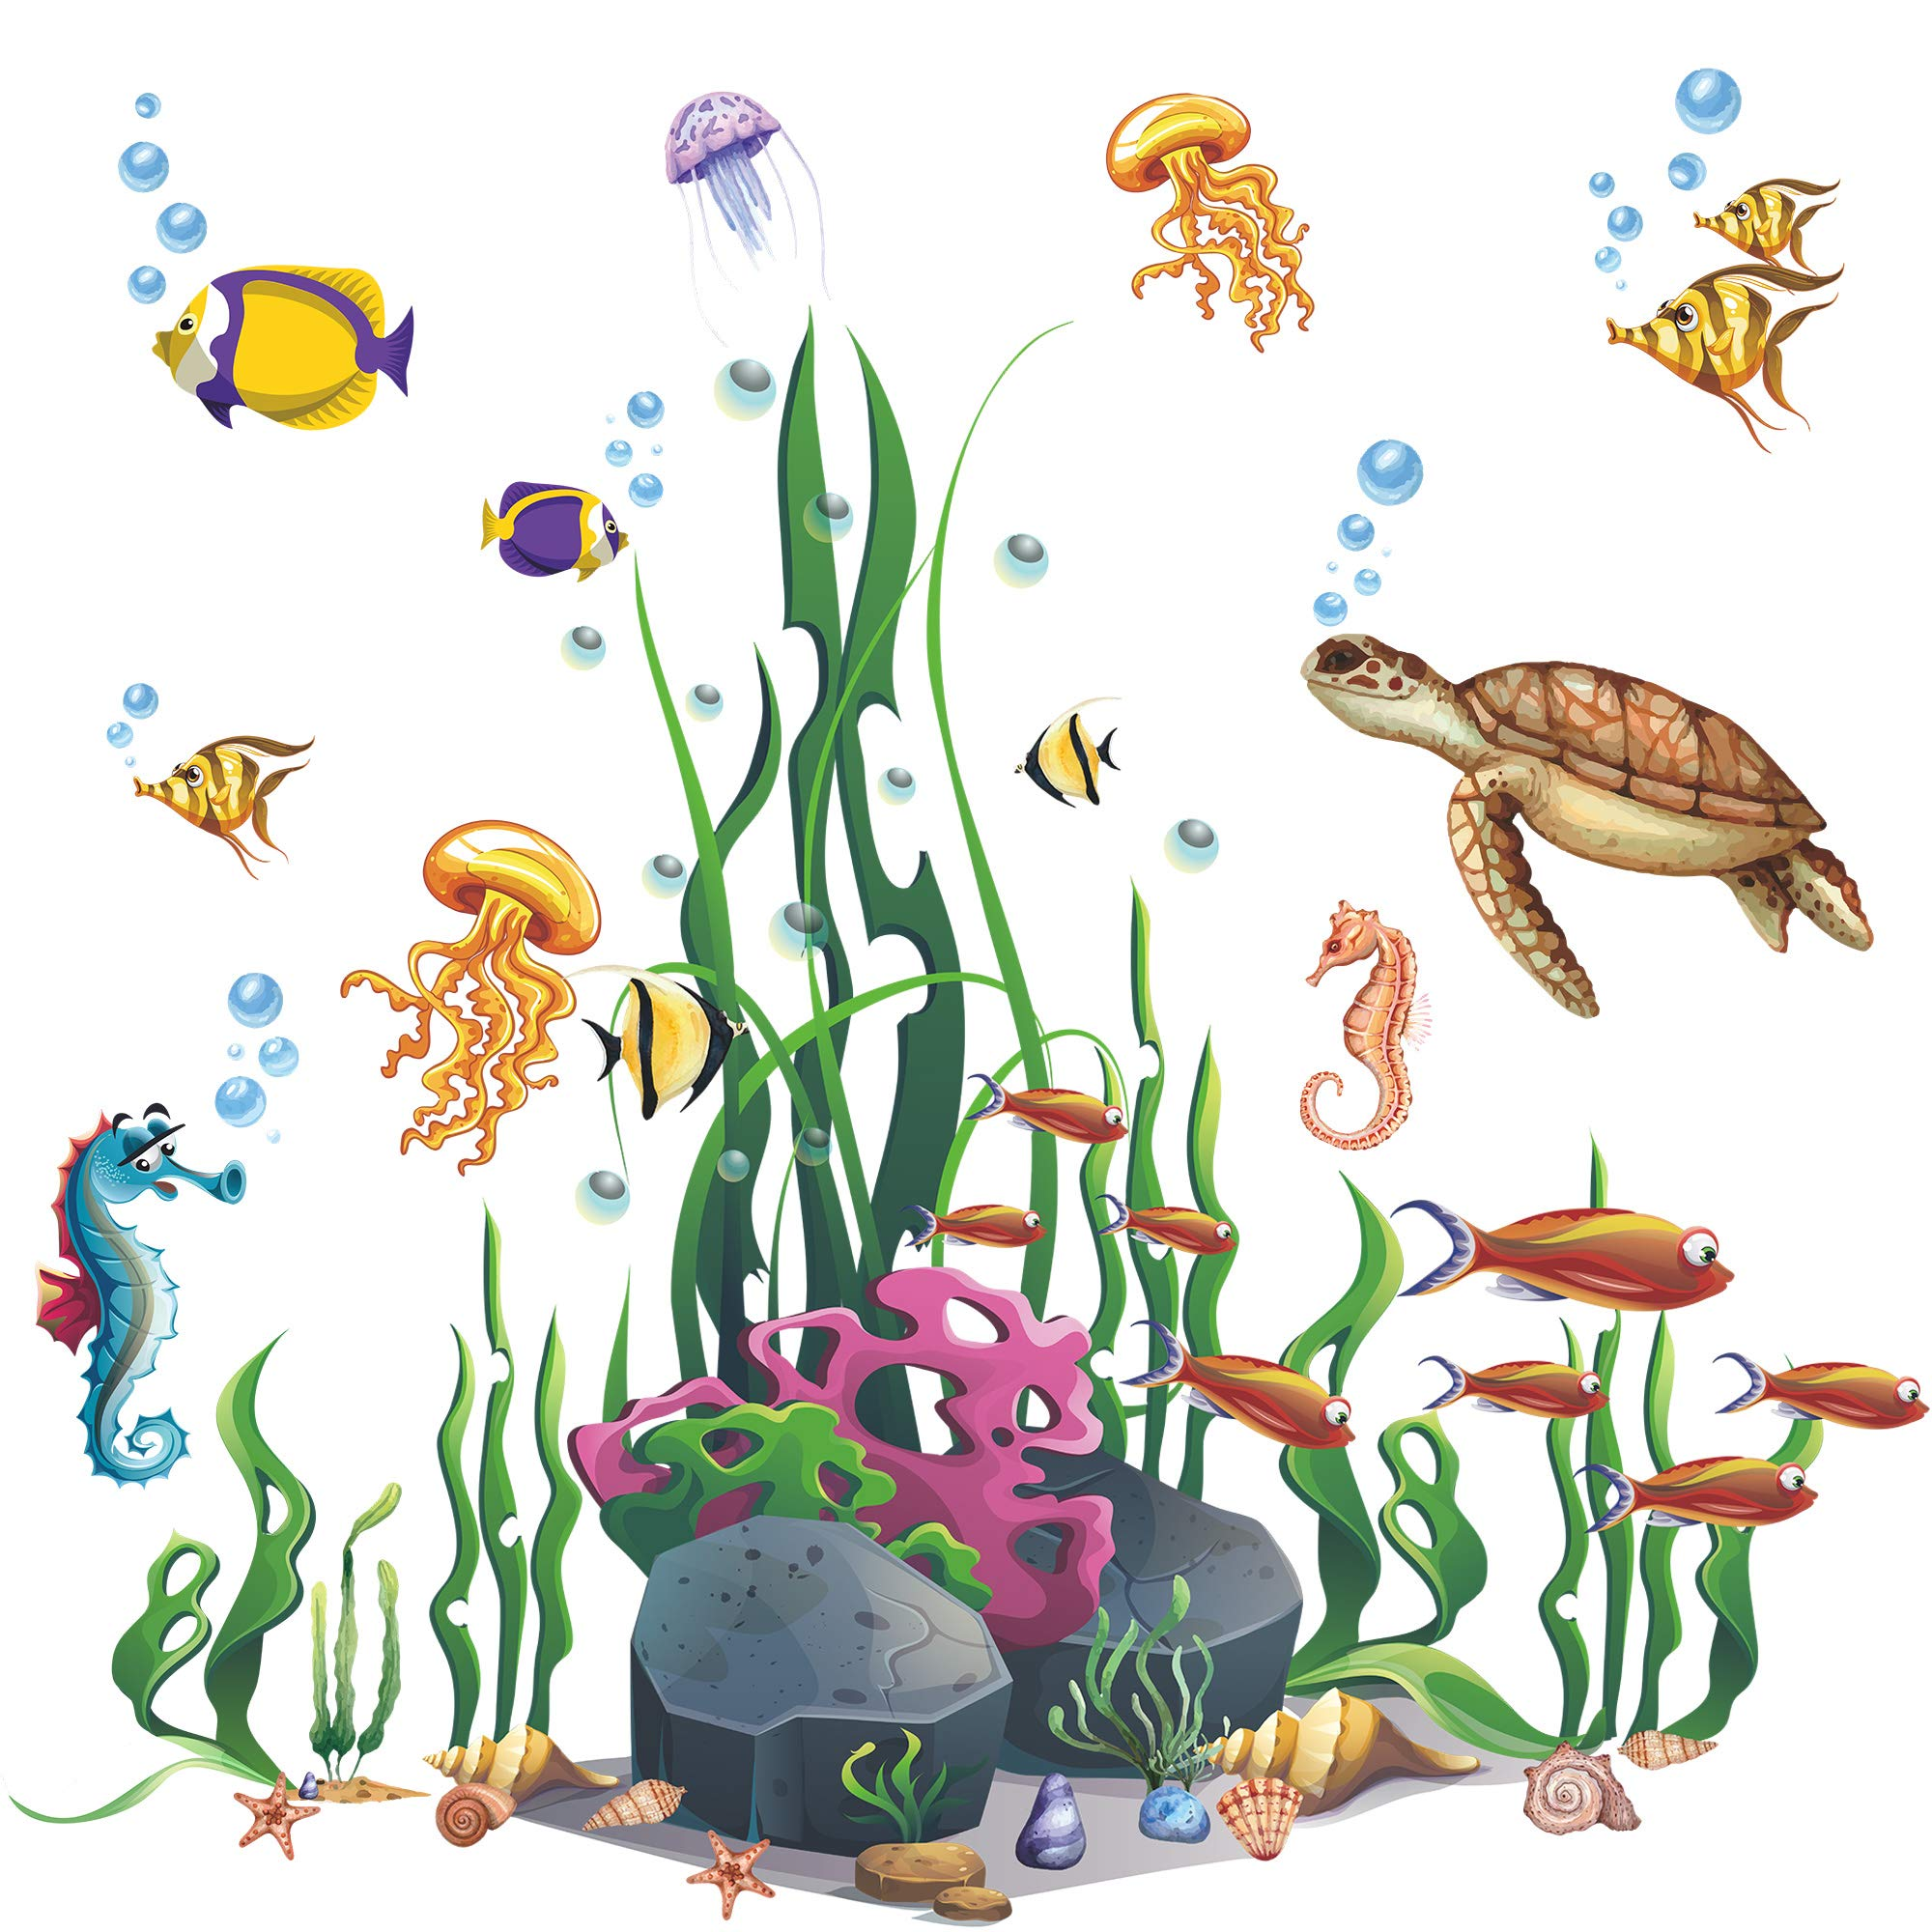 Amaonm Creative Cartoon Removable 3D Under The Sea World Nature Scenery Wall Stickers Ocean Grass Colorful Seaweed Baseboard Wall Decal for Wall Corner Nursery Room Bathroom Living Room (Animals)